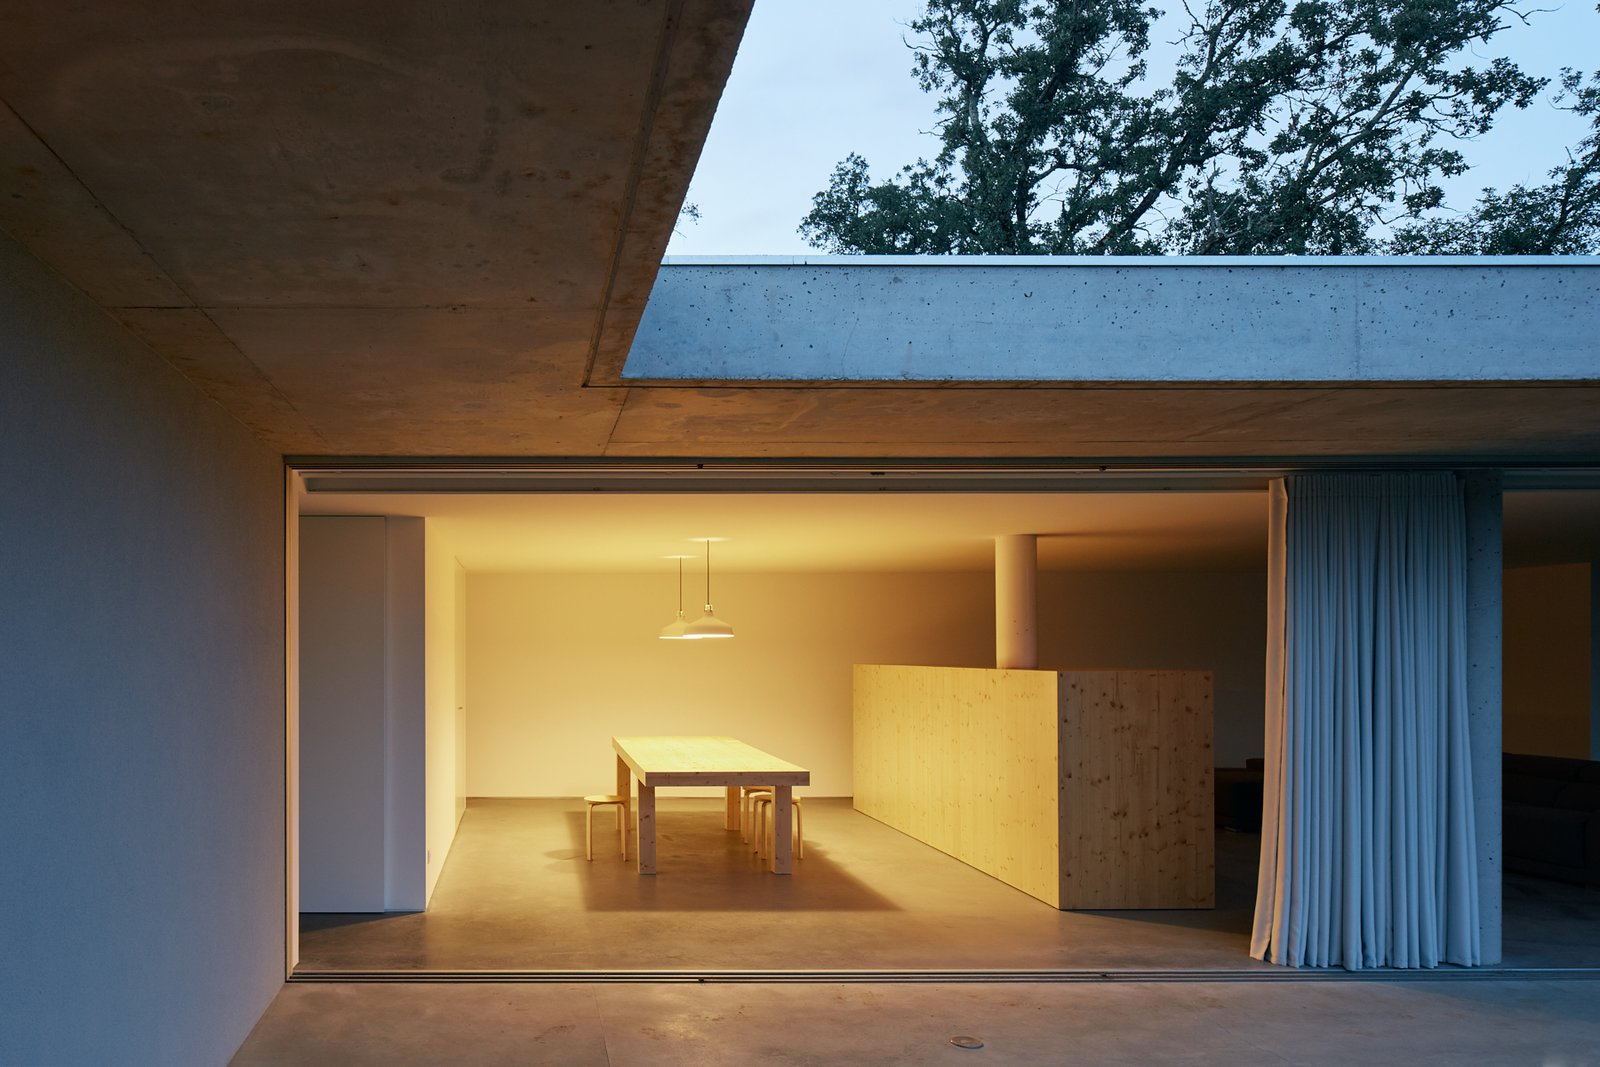 Tagged: Dining Room, Table, Lamps, Pendant Lighting, Concrete Floor, and Chair.  Fanu House by Bruno Lucas